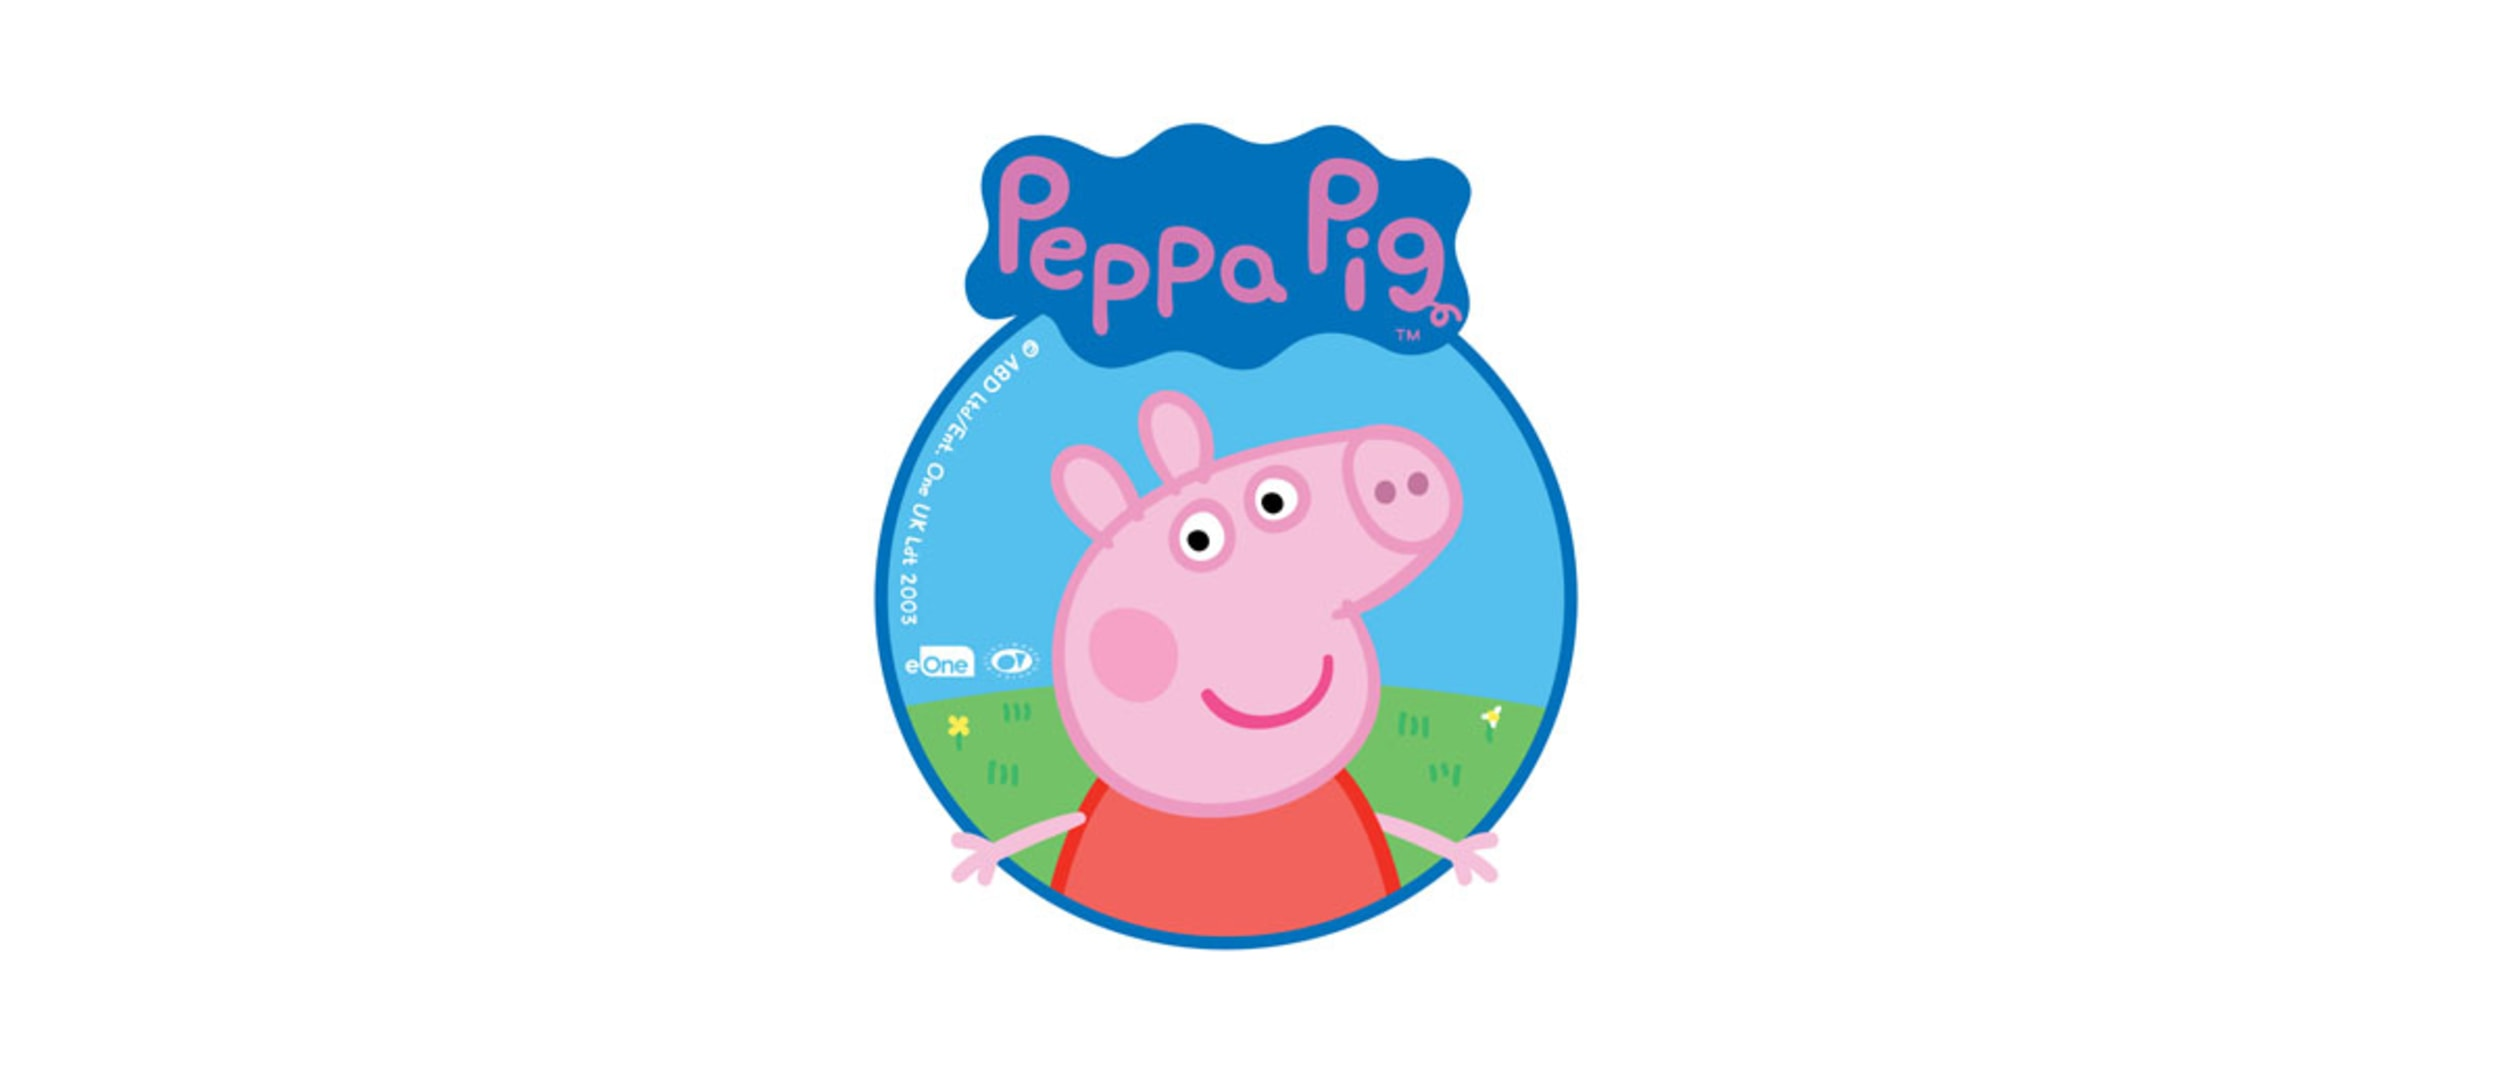 Peppa Pig live show - Fully Booked